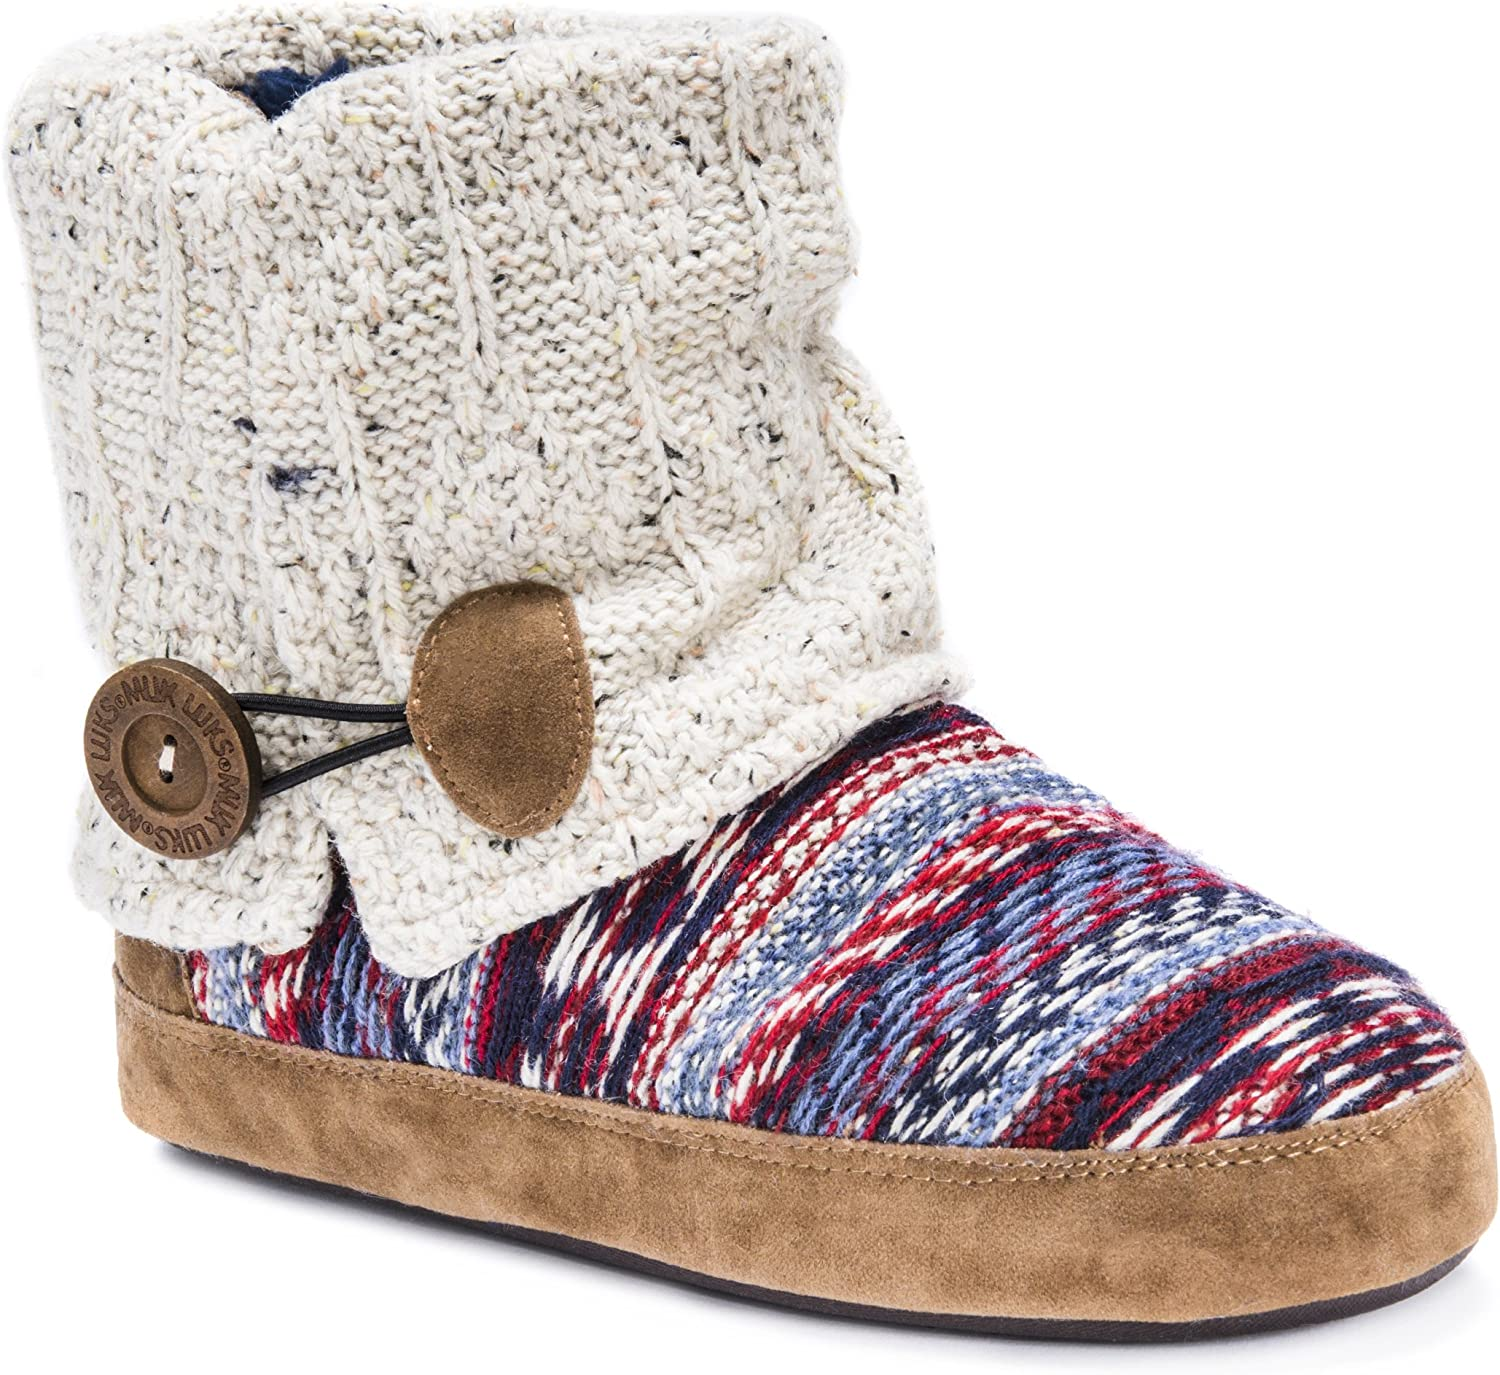 MUK LUKS Women's Patti Slippers-Oatmeal